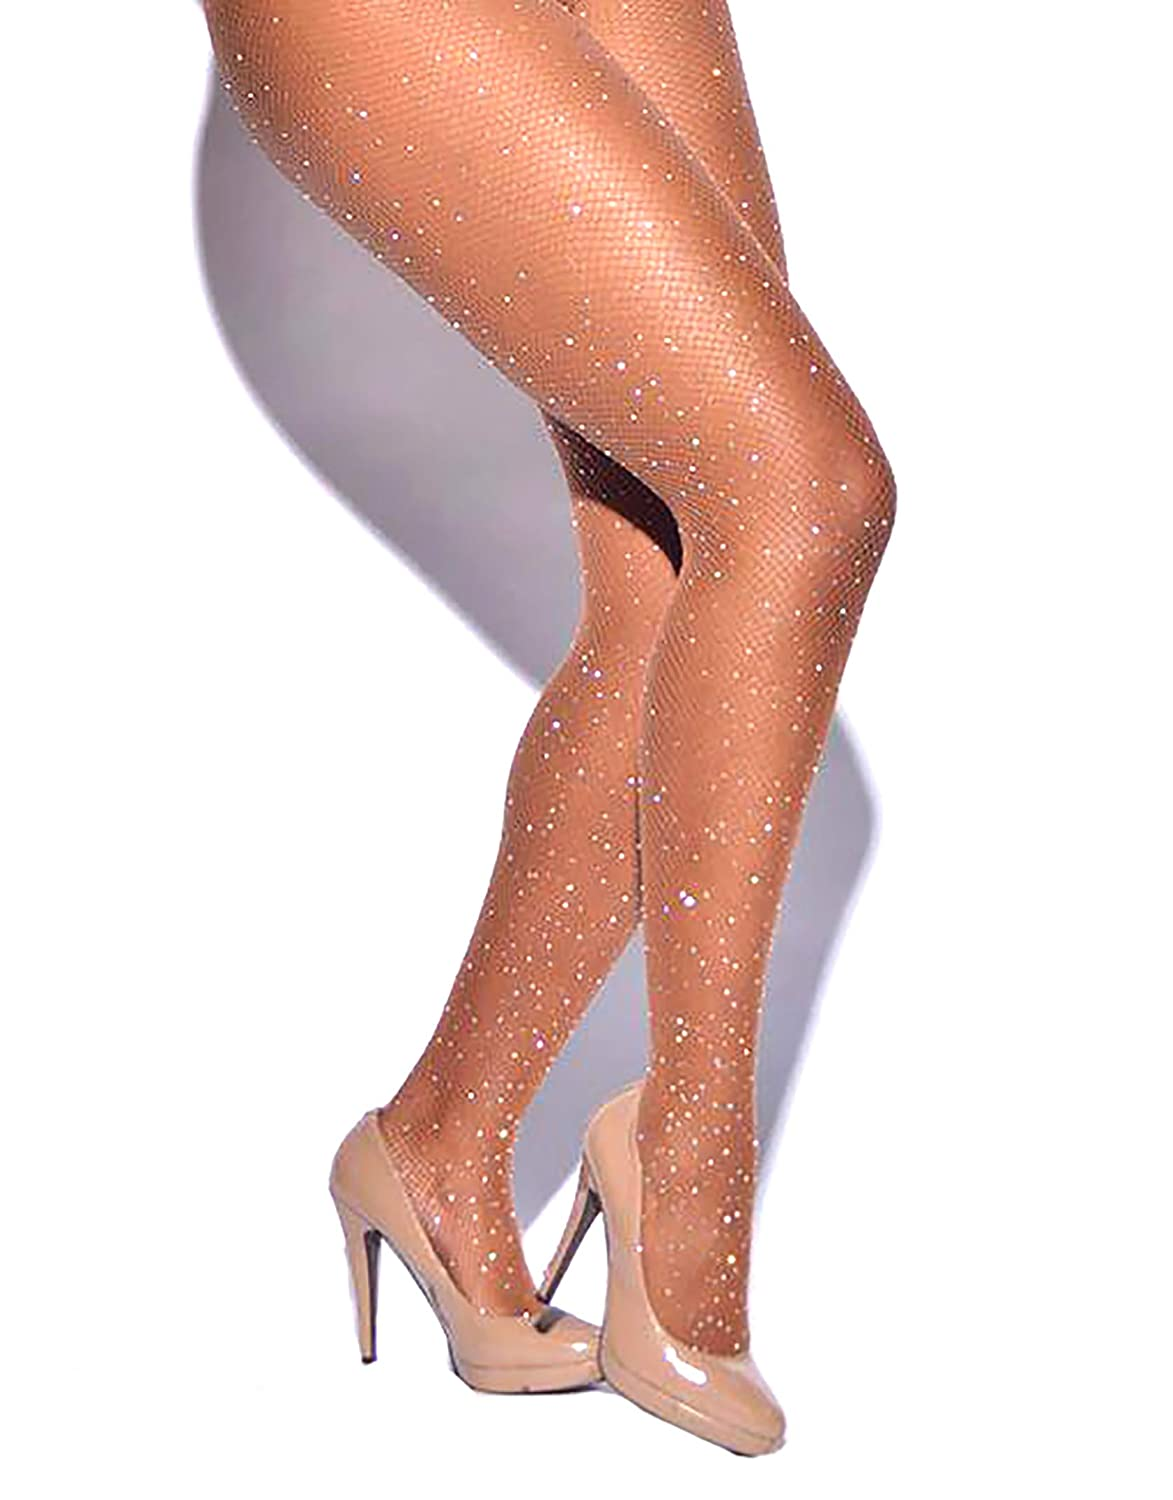 3a2084ba1d20f Women's Fishnet Stockings Sparkle Glitter Rhinestone Pantyhose Tights One  Size (One Size, Brown)